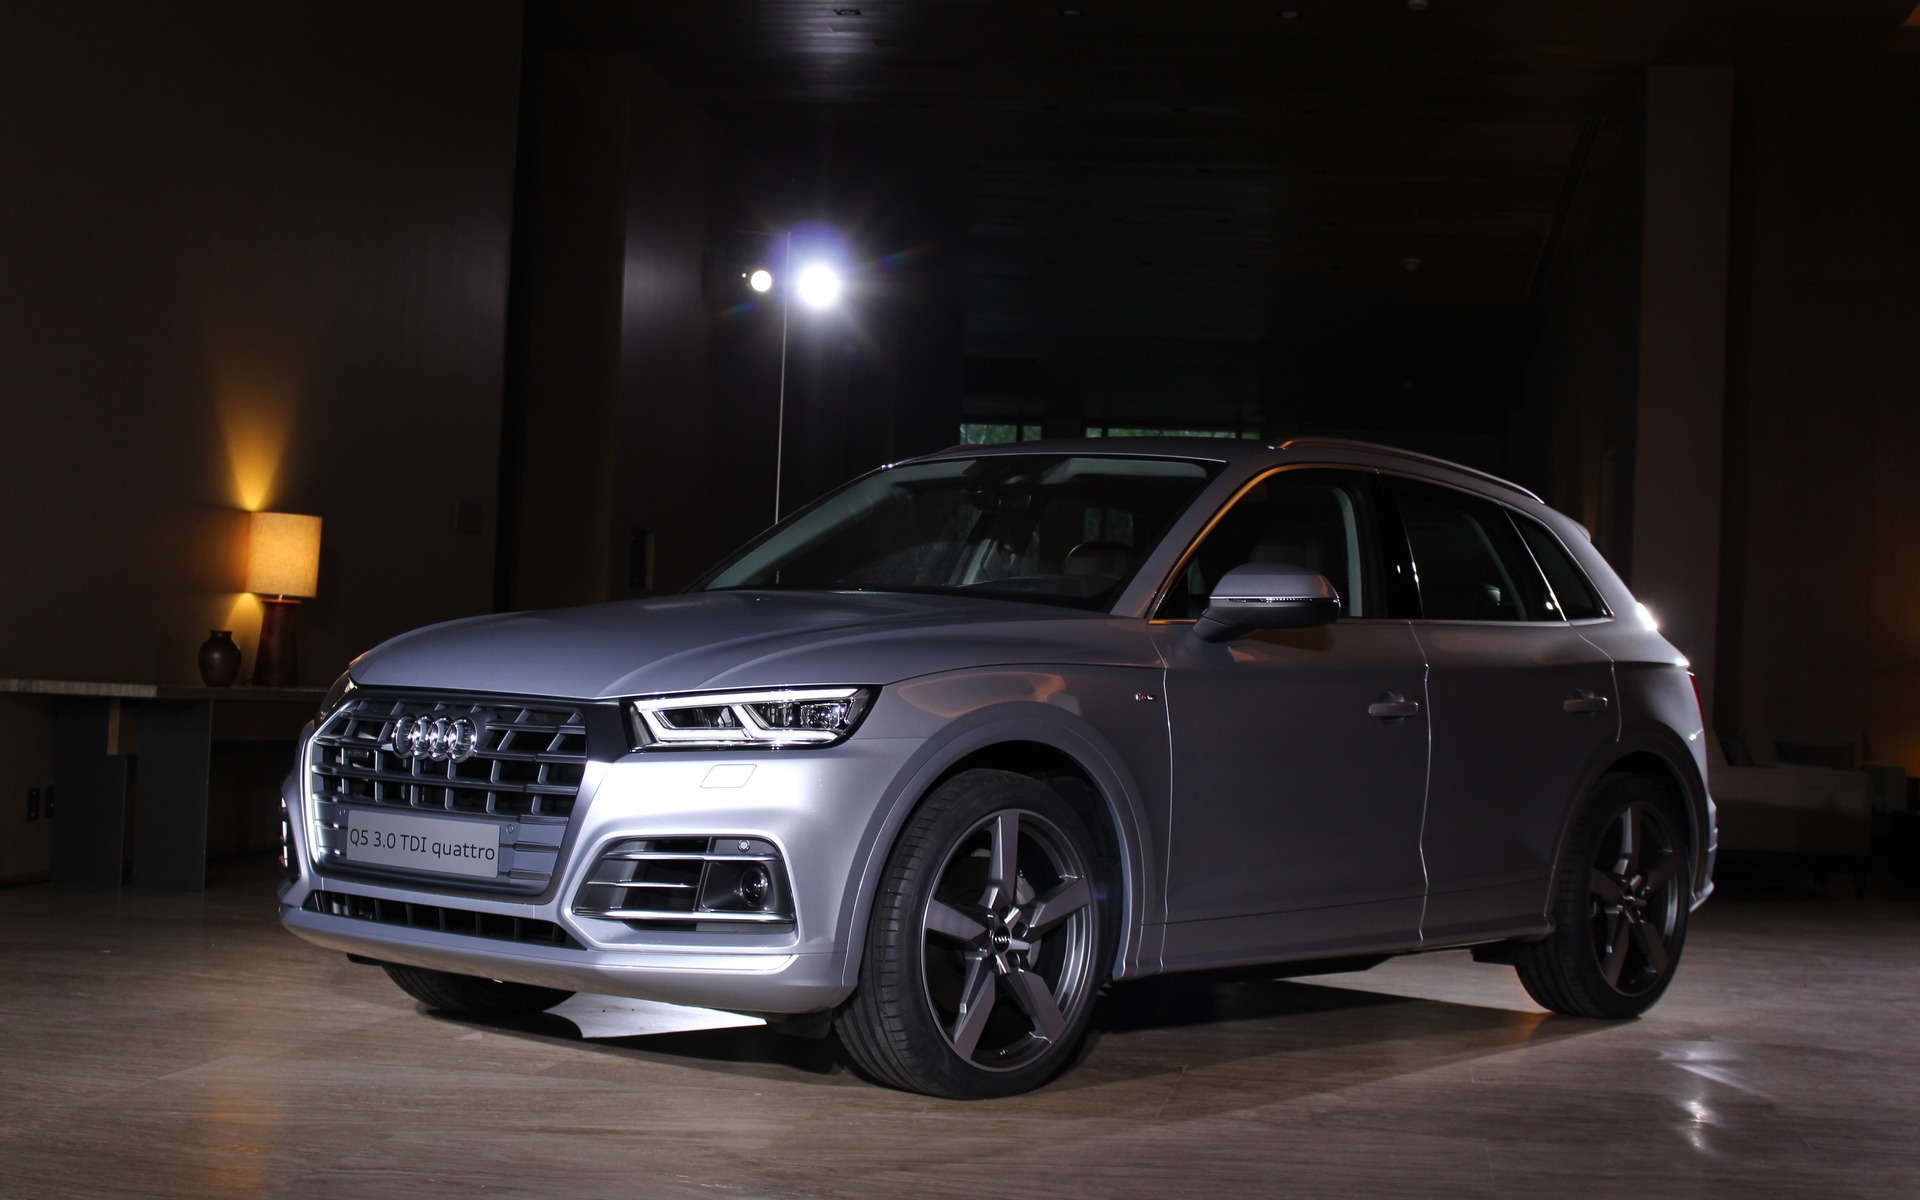 2018 Audi Q5 It S All About The Details 6 30